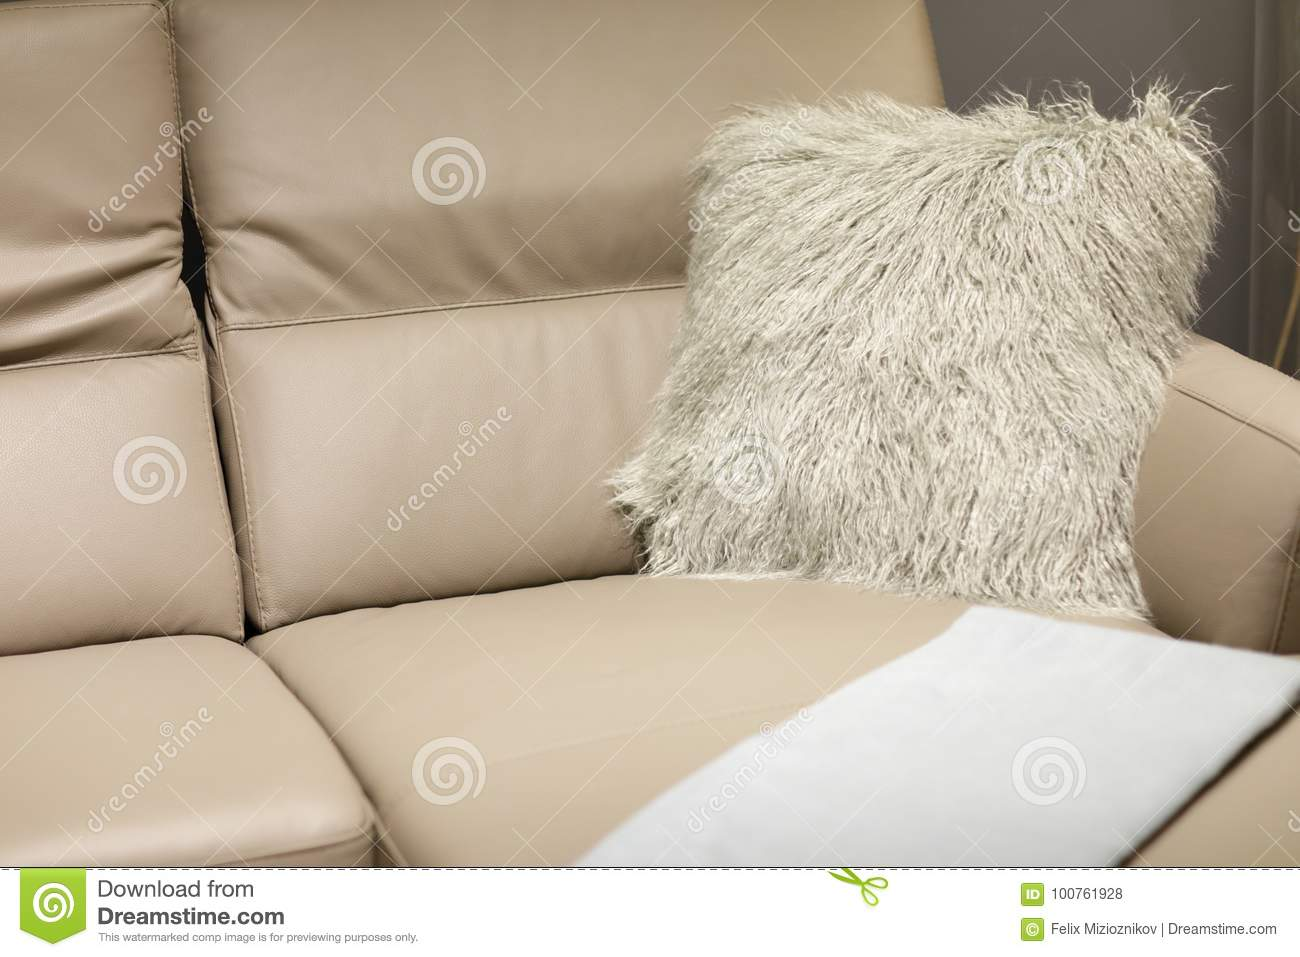 Awesome Leather Couch With Decoration Pillows And Throw Stock Photo Lamtechconsult Wood Chair Design Ideas Lamtechconsultcom